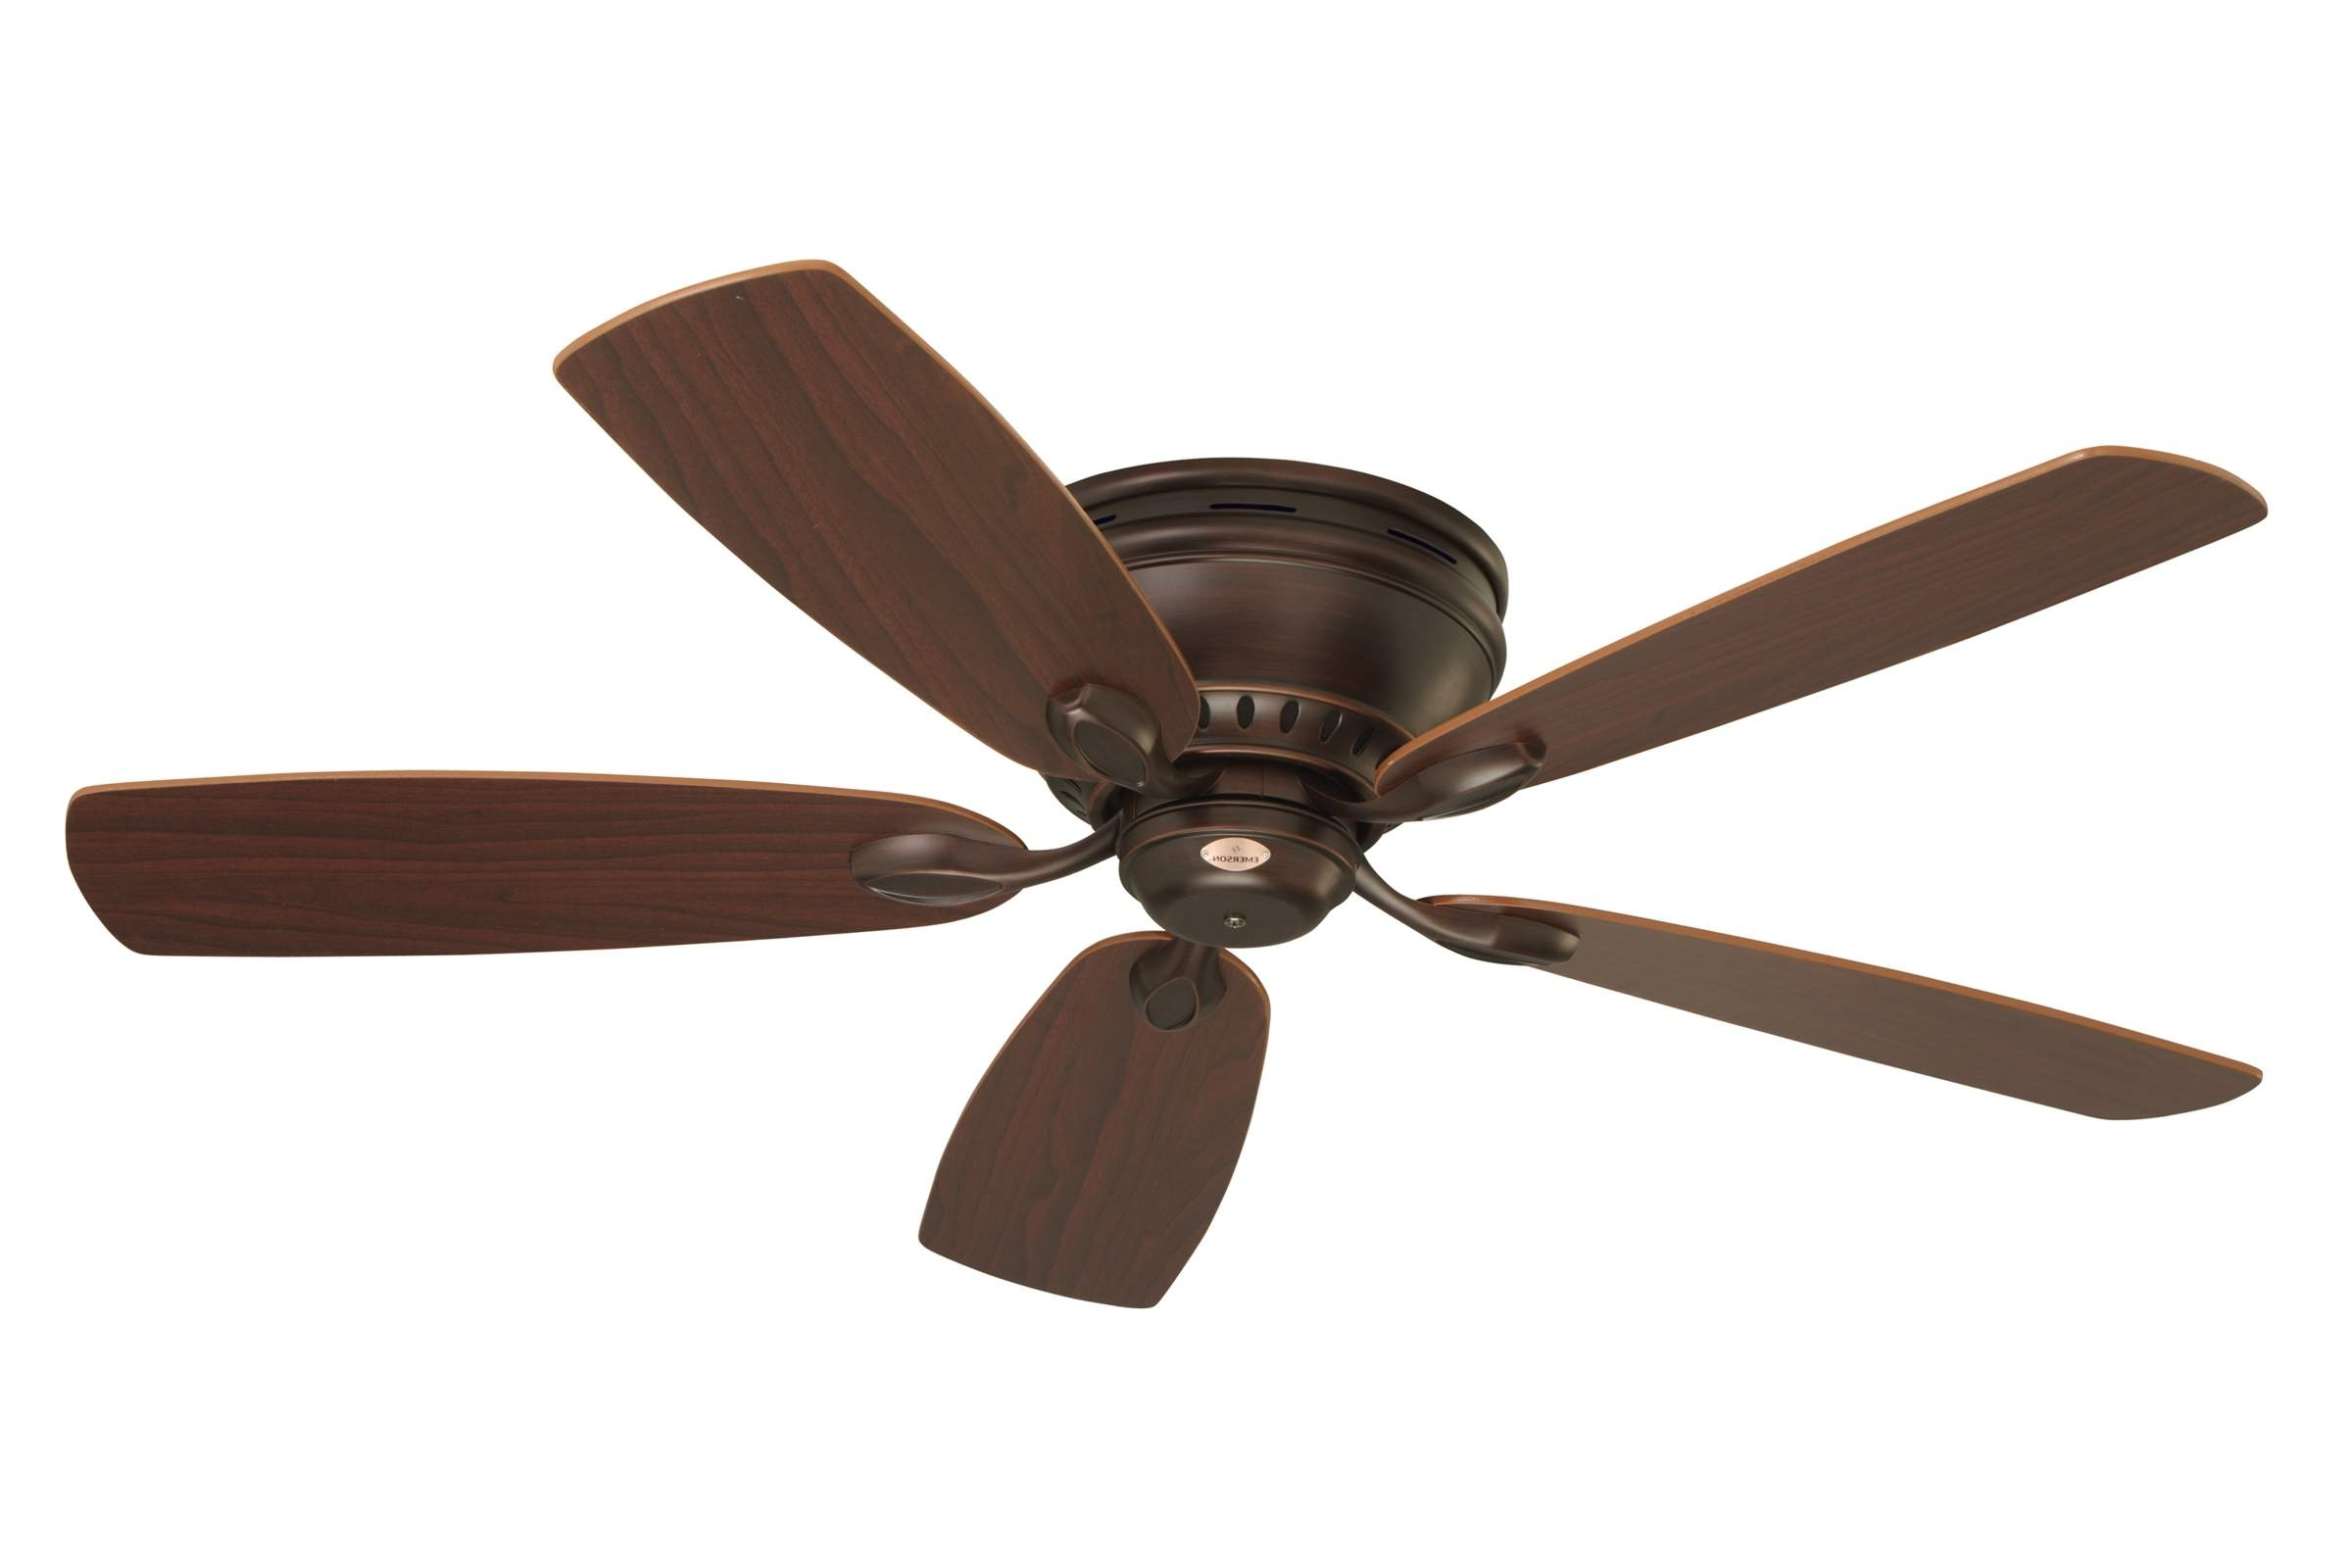 Ceiling Lights : Minimalis Outdoor Ceiling Fan With Light Home Depot In Widely Used Brown Outdoor Ceiling Fan With Light (View 8 of 20)